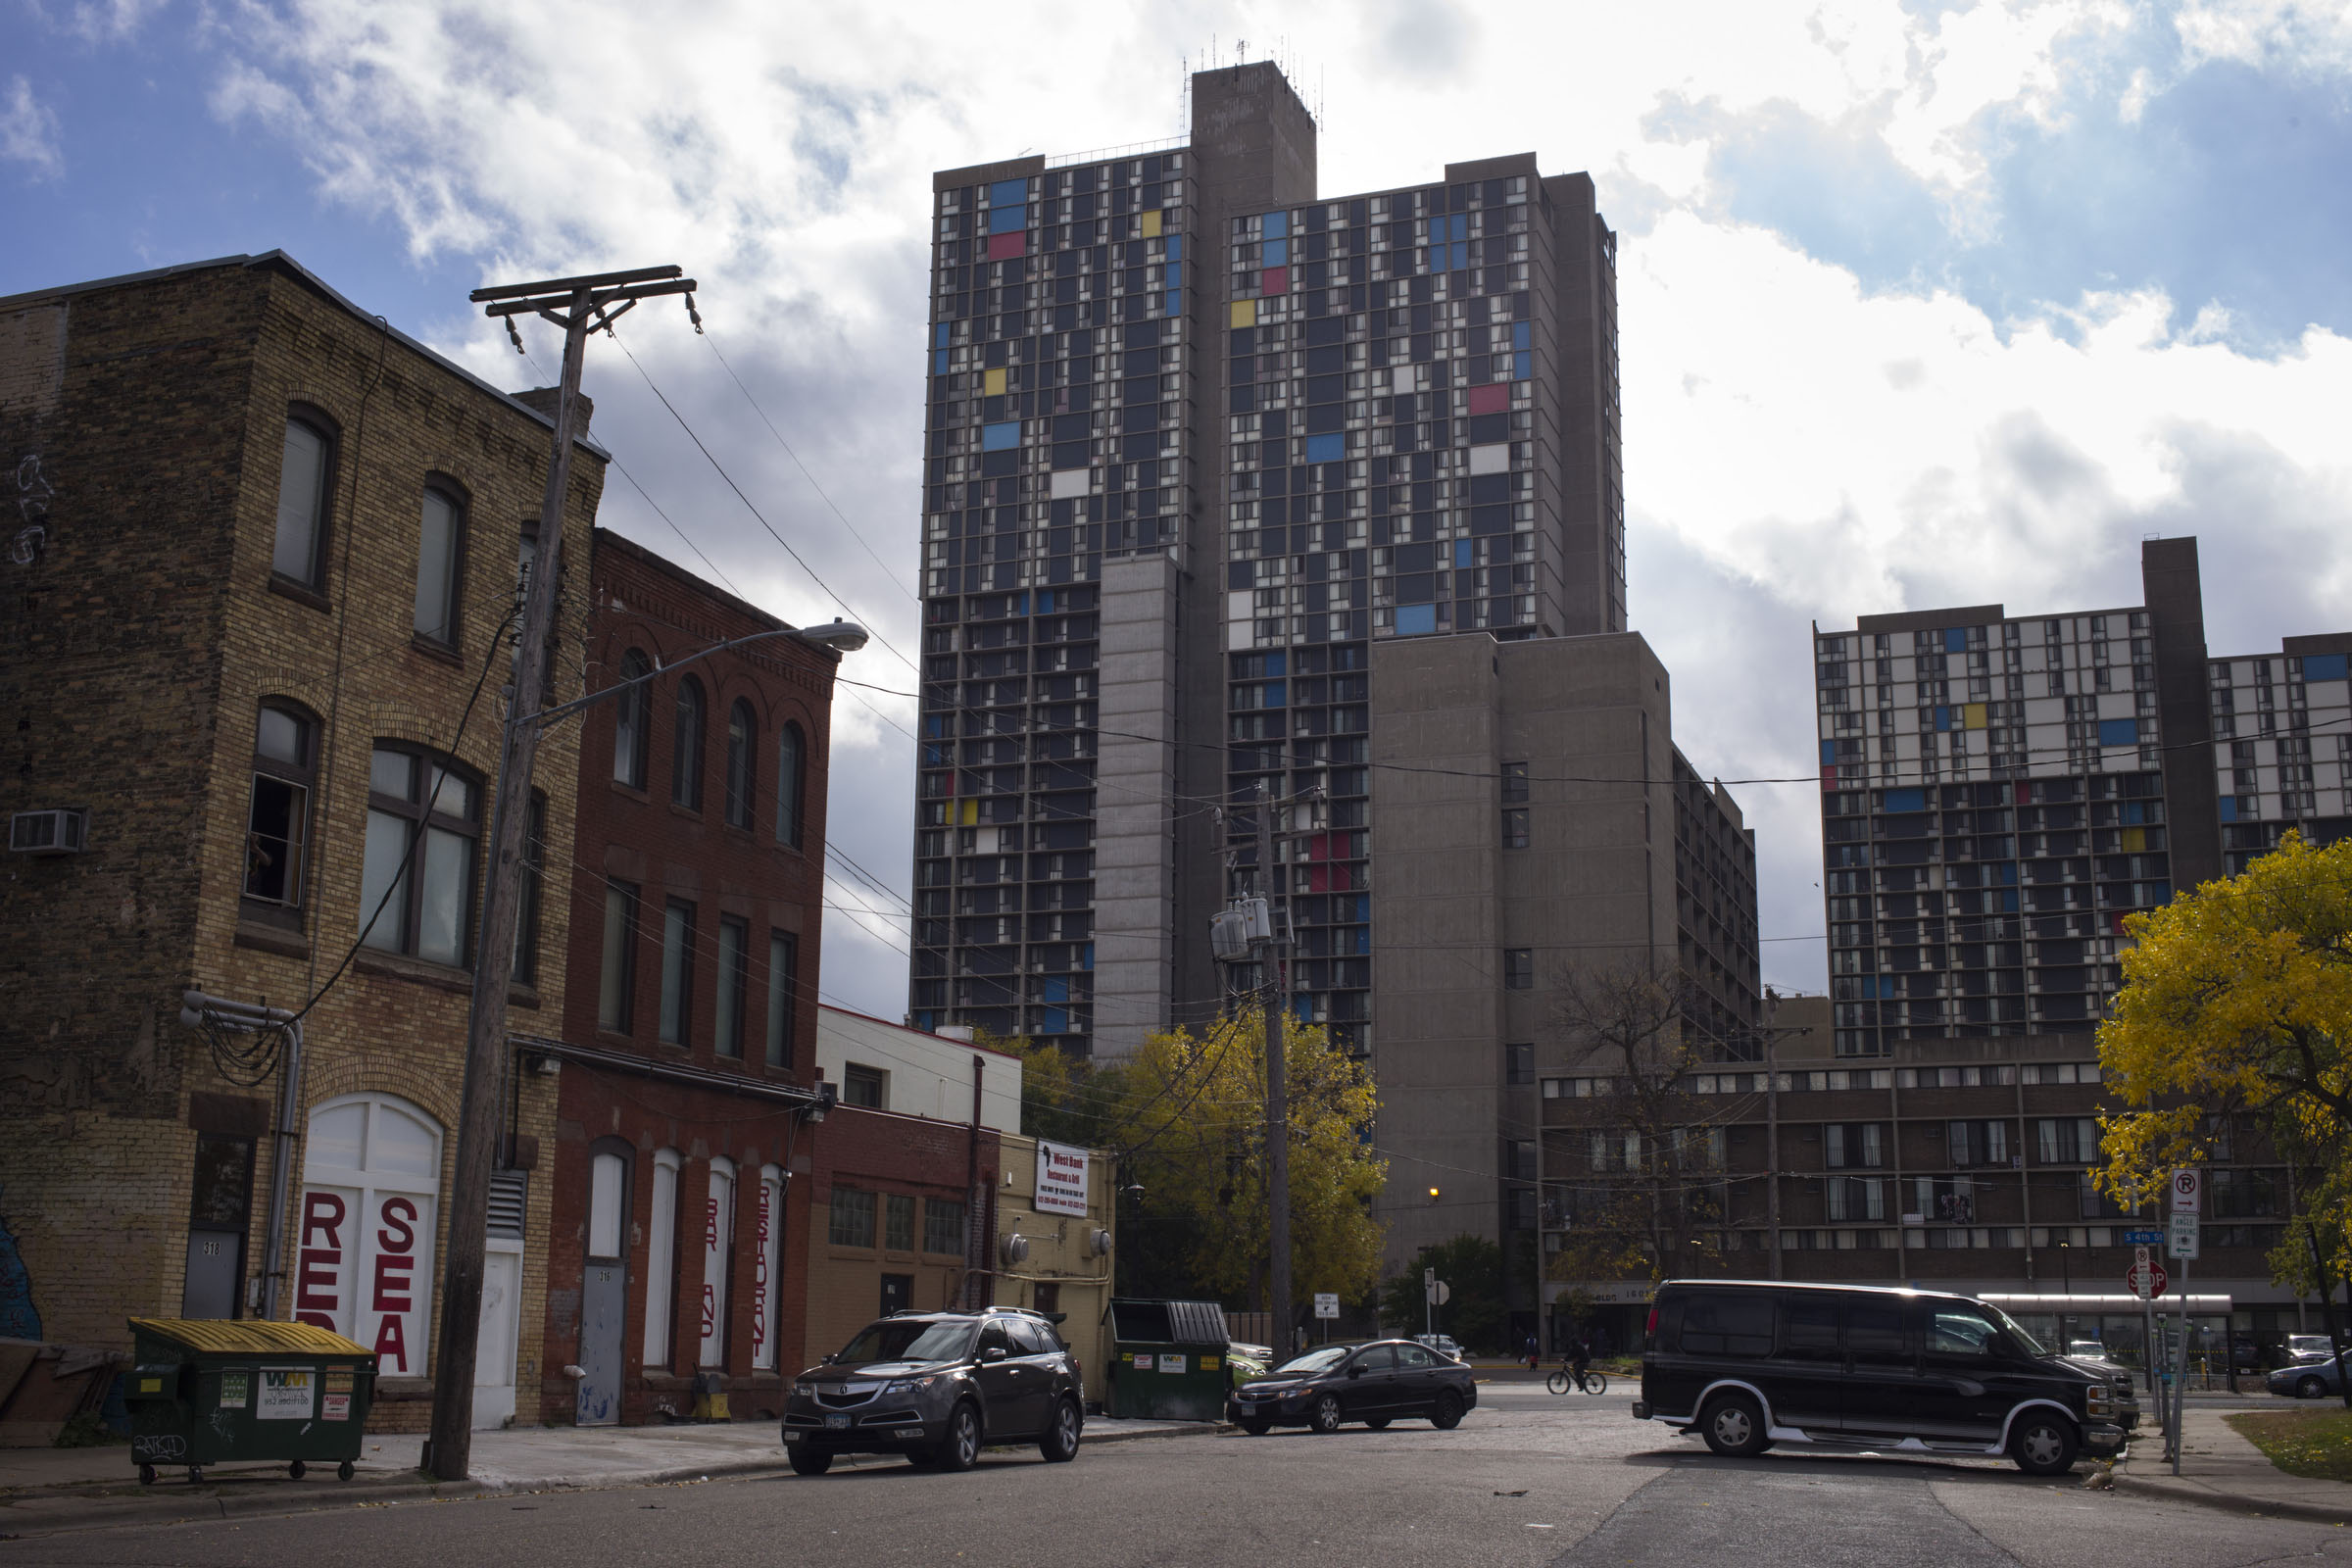 An apartment building towers over shops in the Cedar-Riverside neighborhood of Minneapolis, Minn., on Thursday, October 12, 2017. (Photo by Brittany Greeson)